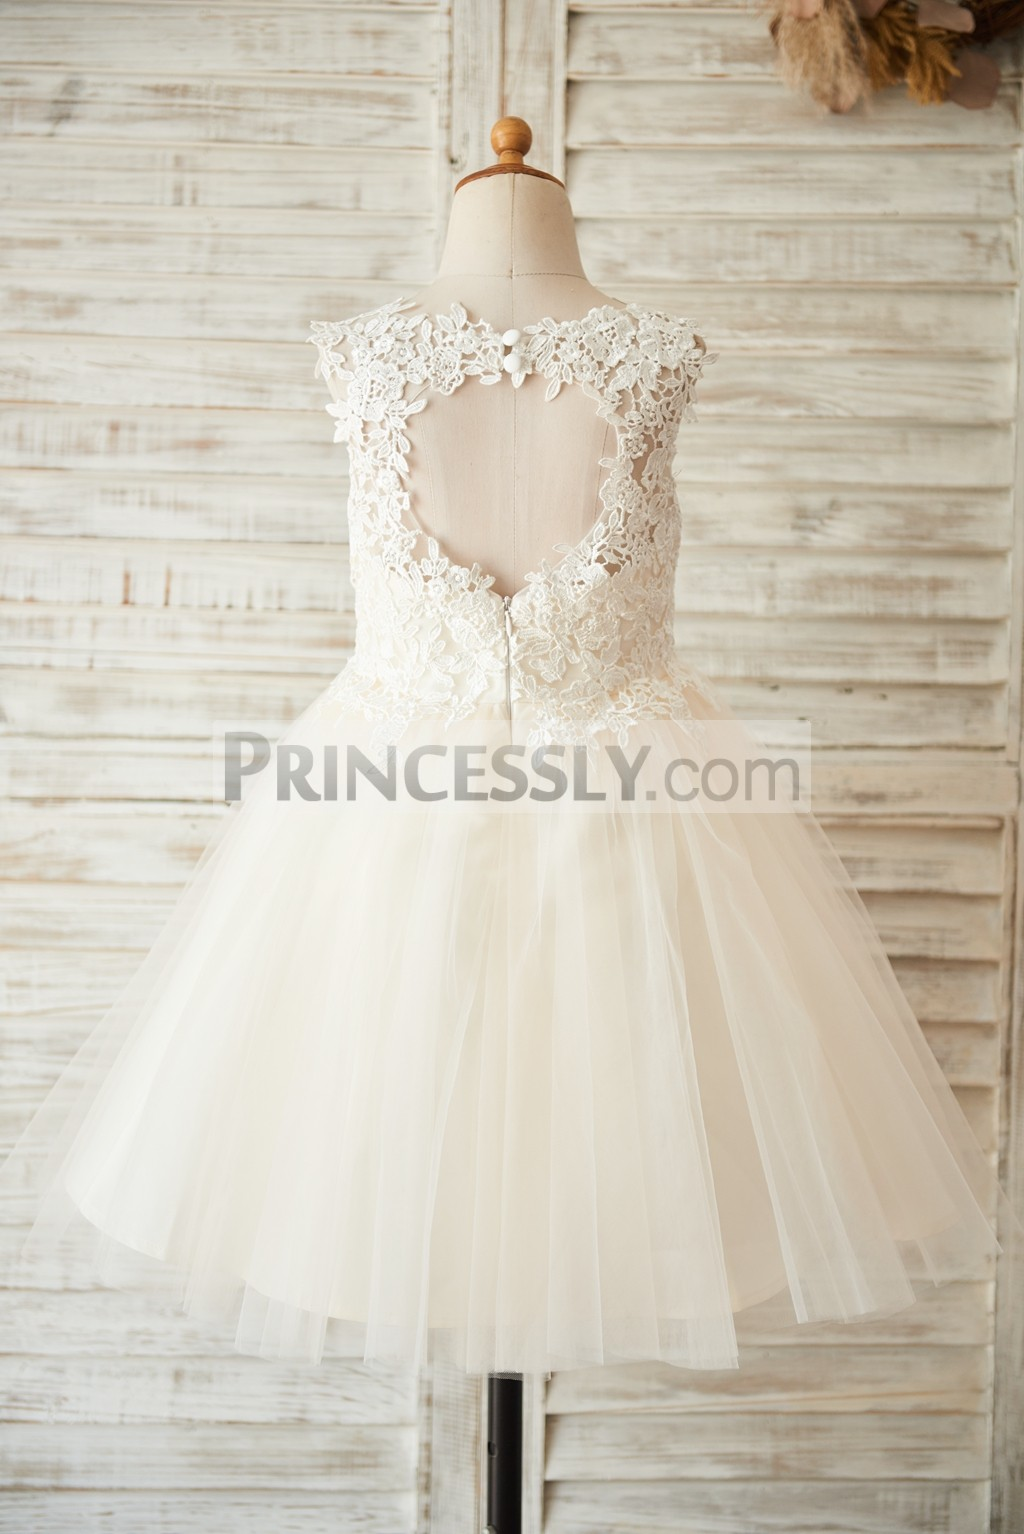 Princessly.com-K1003504-Ivory Lace Champagne Tulle Wedding Flower Girl Dress with Keyhole Back-31